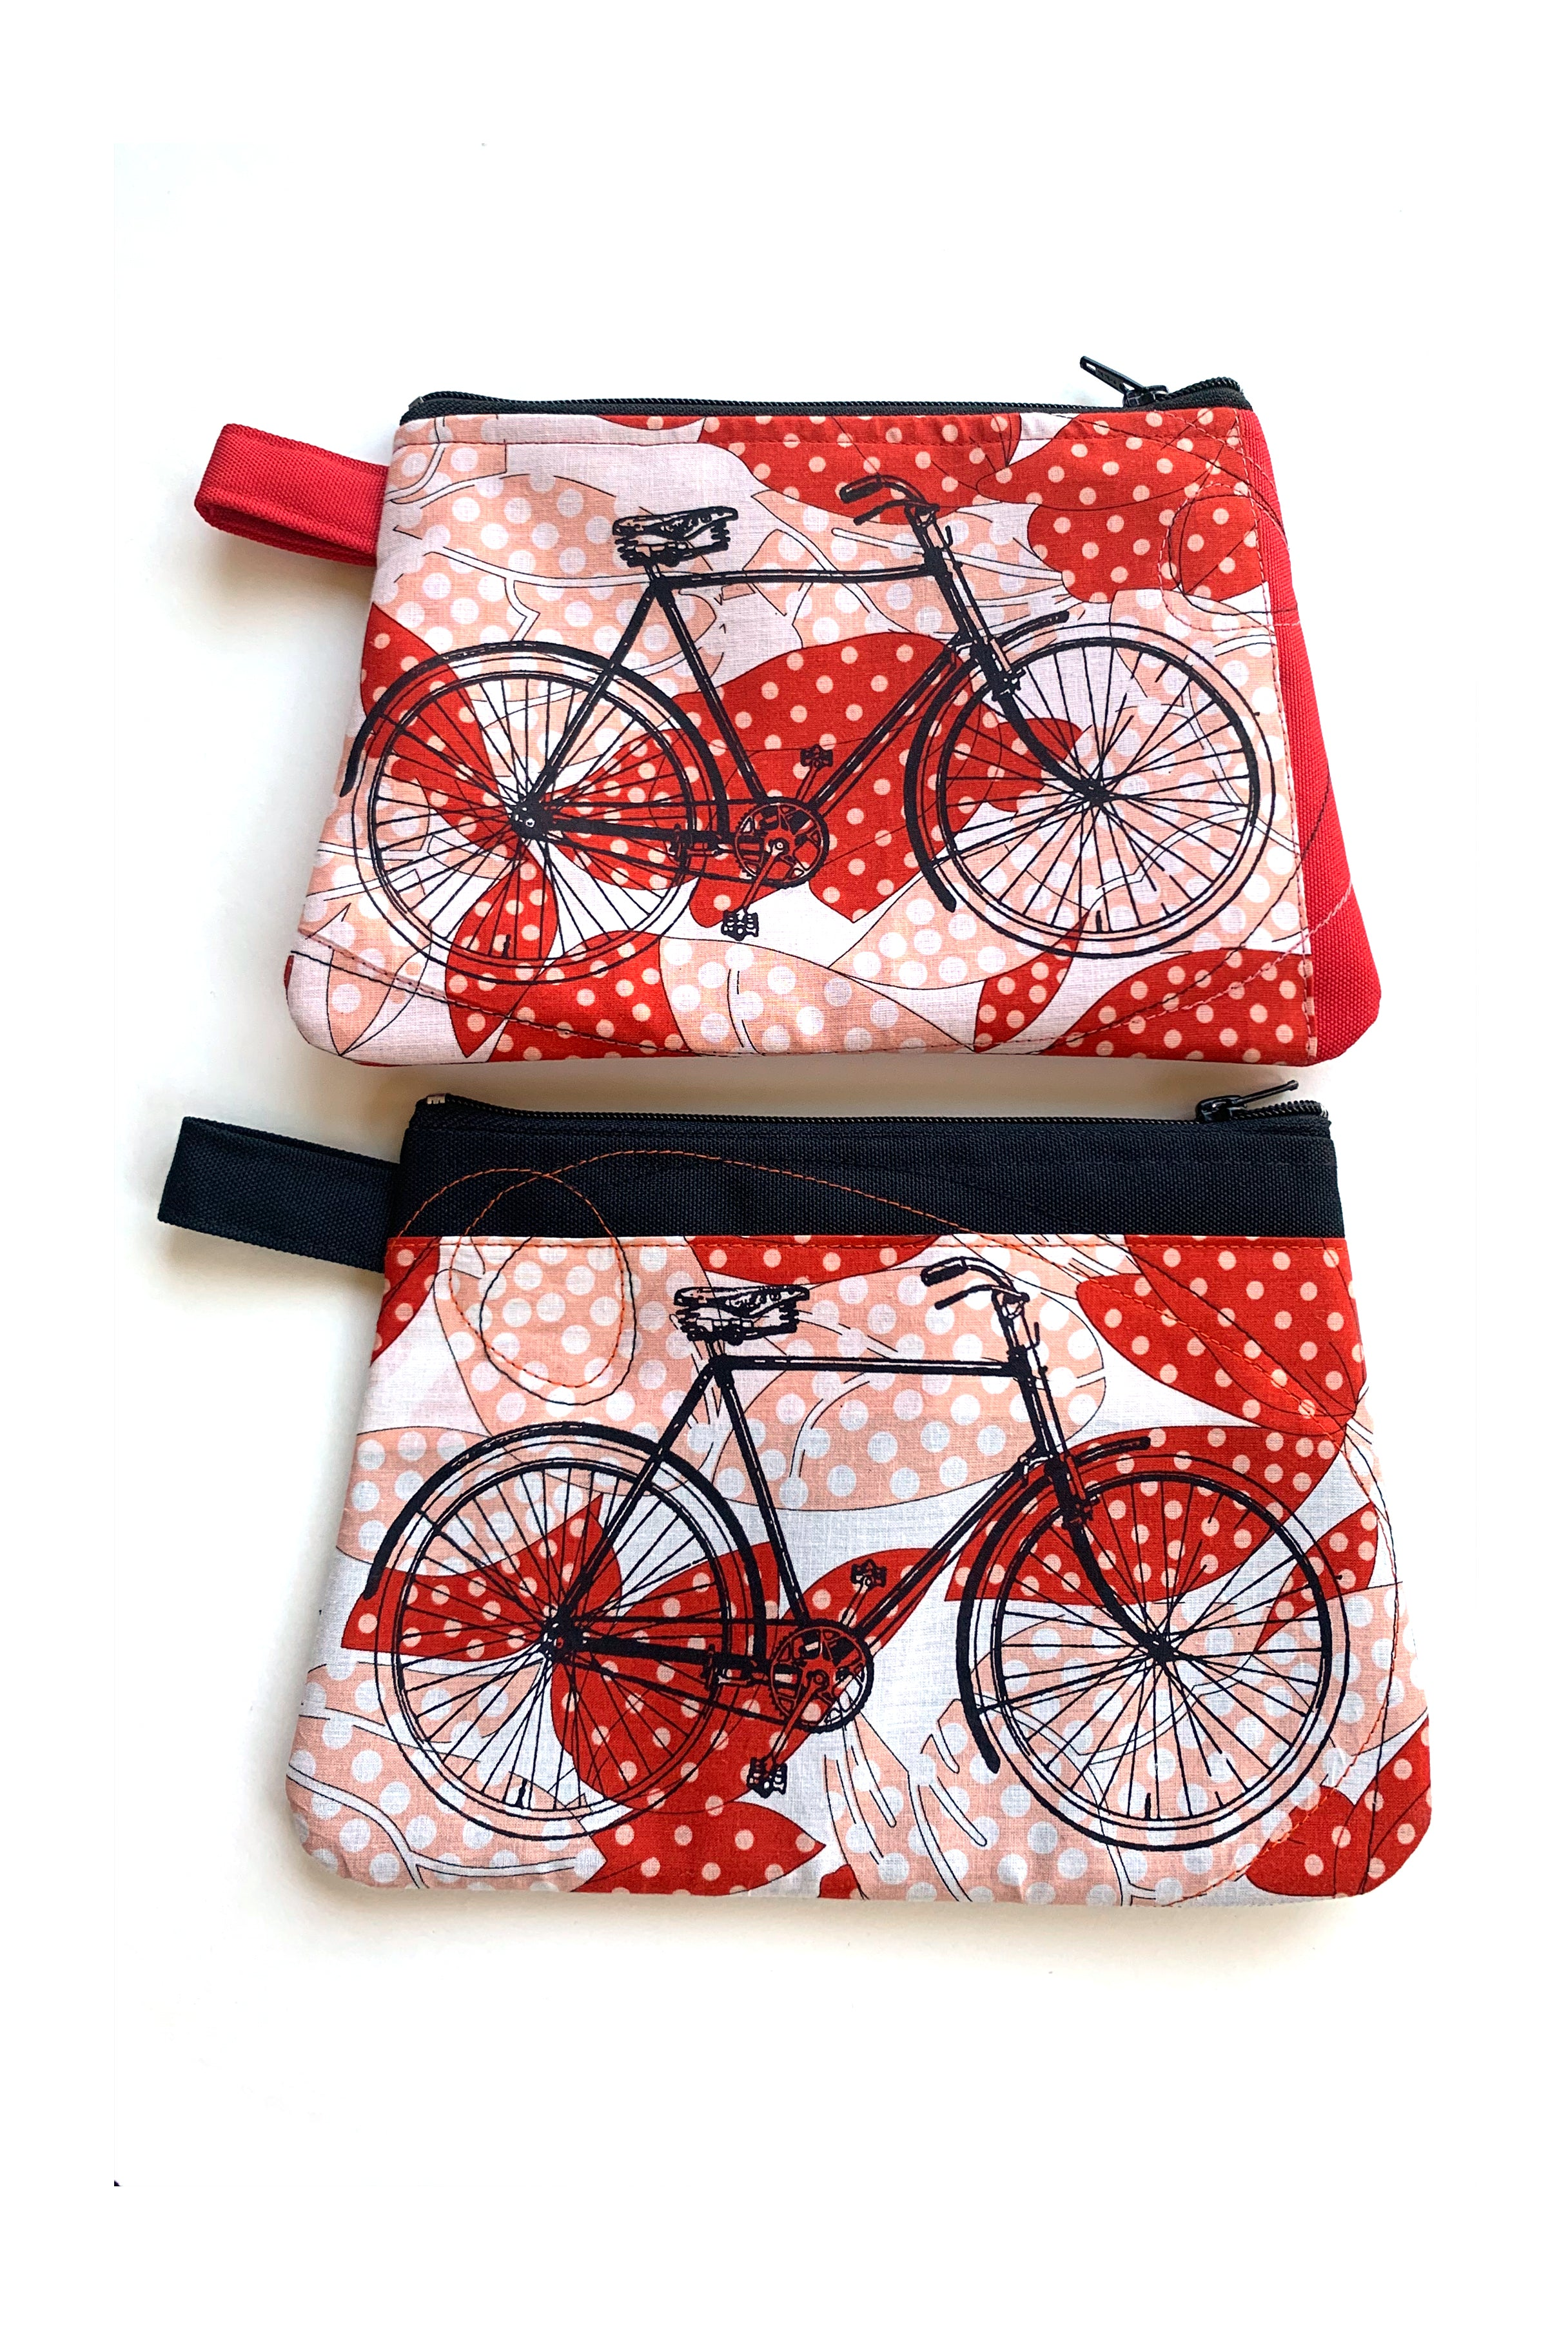 Cynthia DM One of a Kind Pouches - 5 OPTIONS